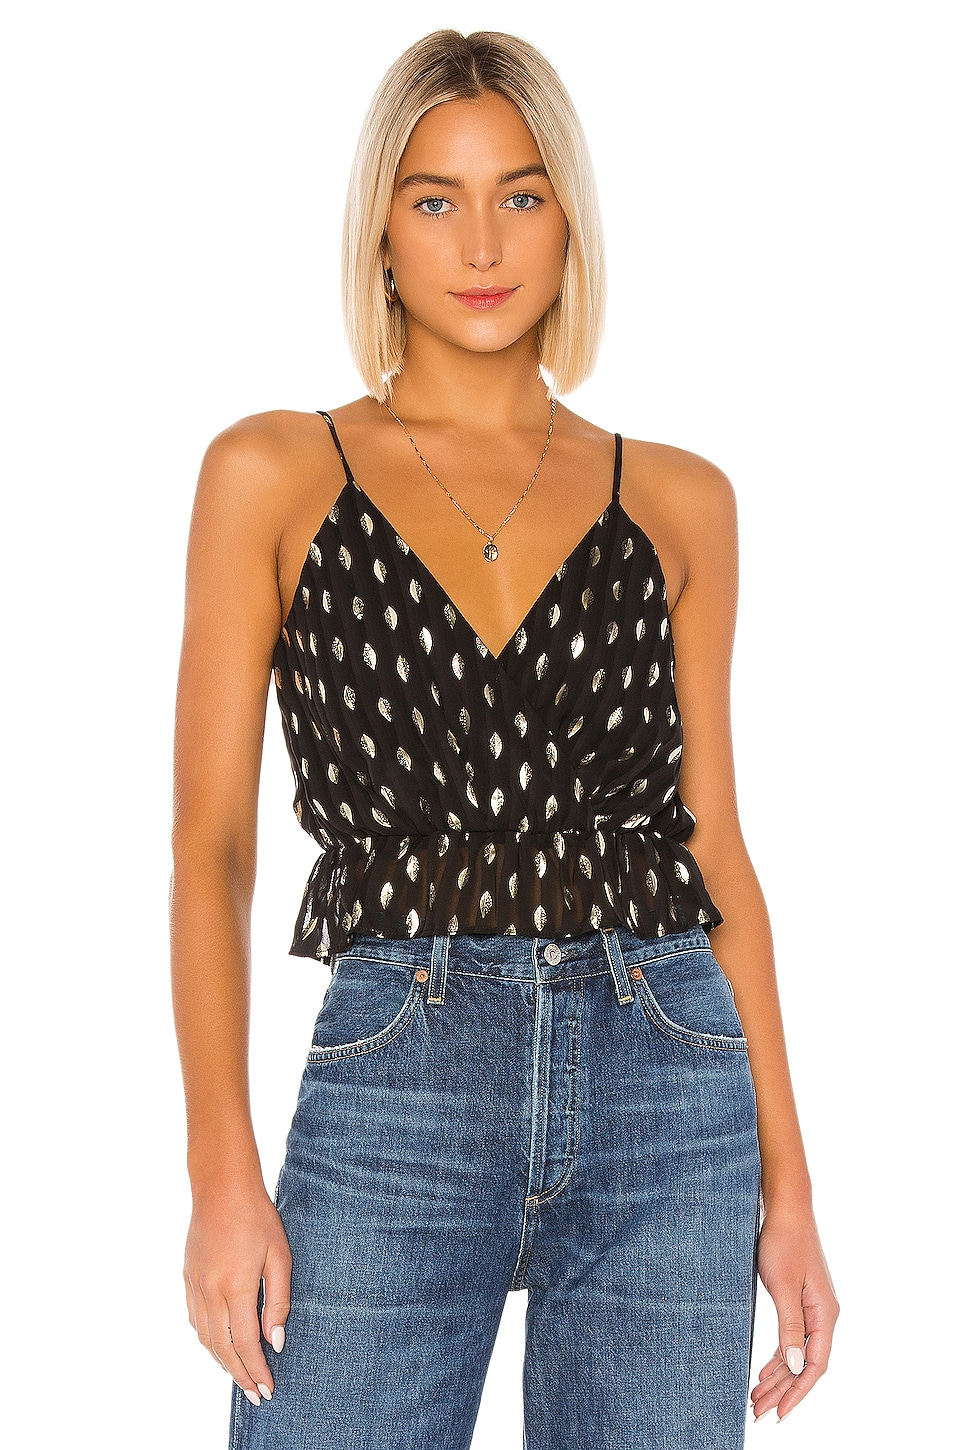 House of Harlow 1960 x REVOLVE Ava Top in Noir